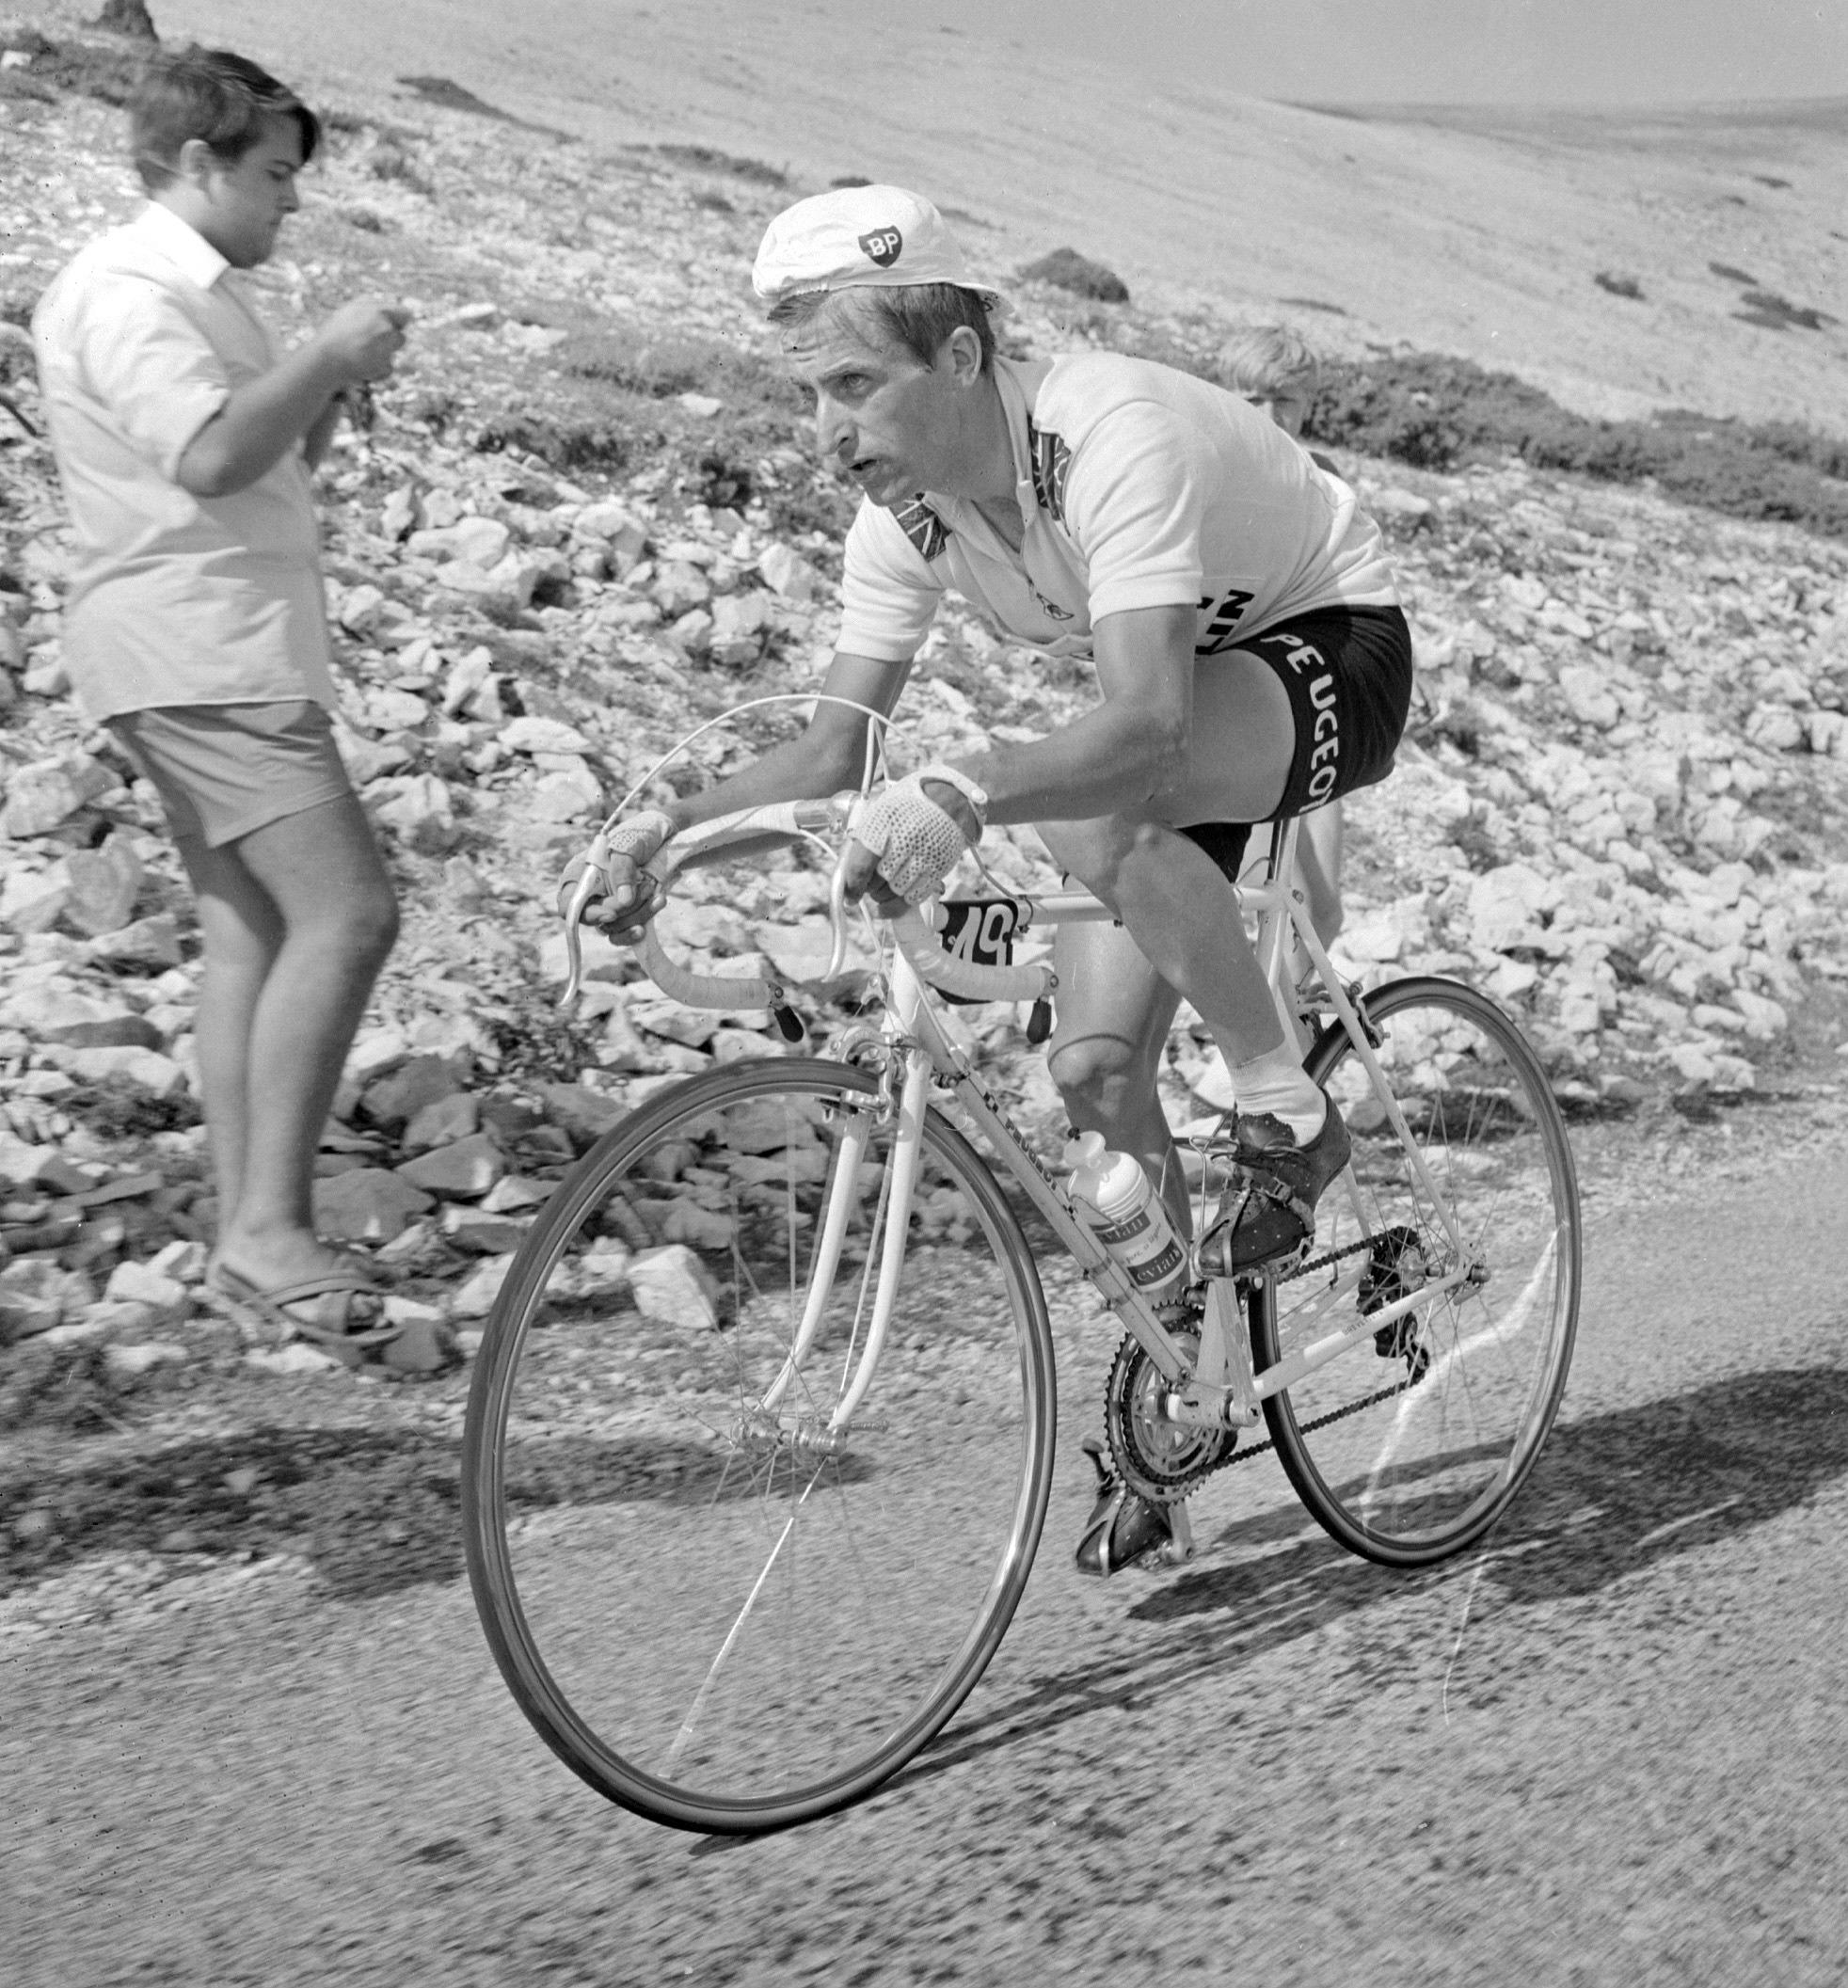 Tom Simpson tragically died 50 years ago on the slopes of Mont Ventoux while he was riding a mountain stage